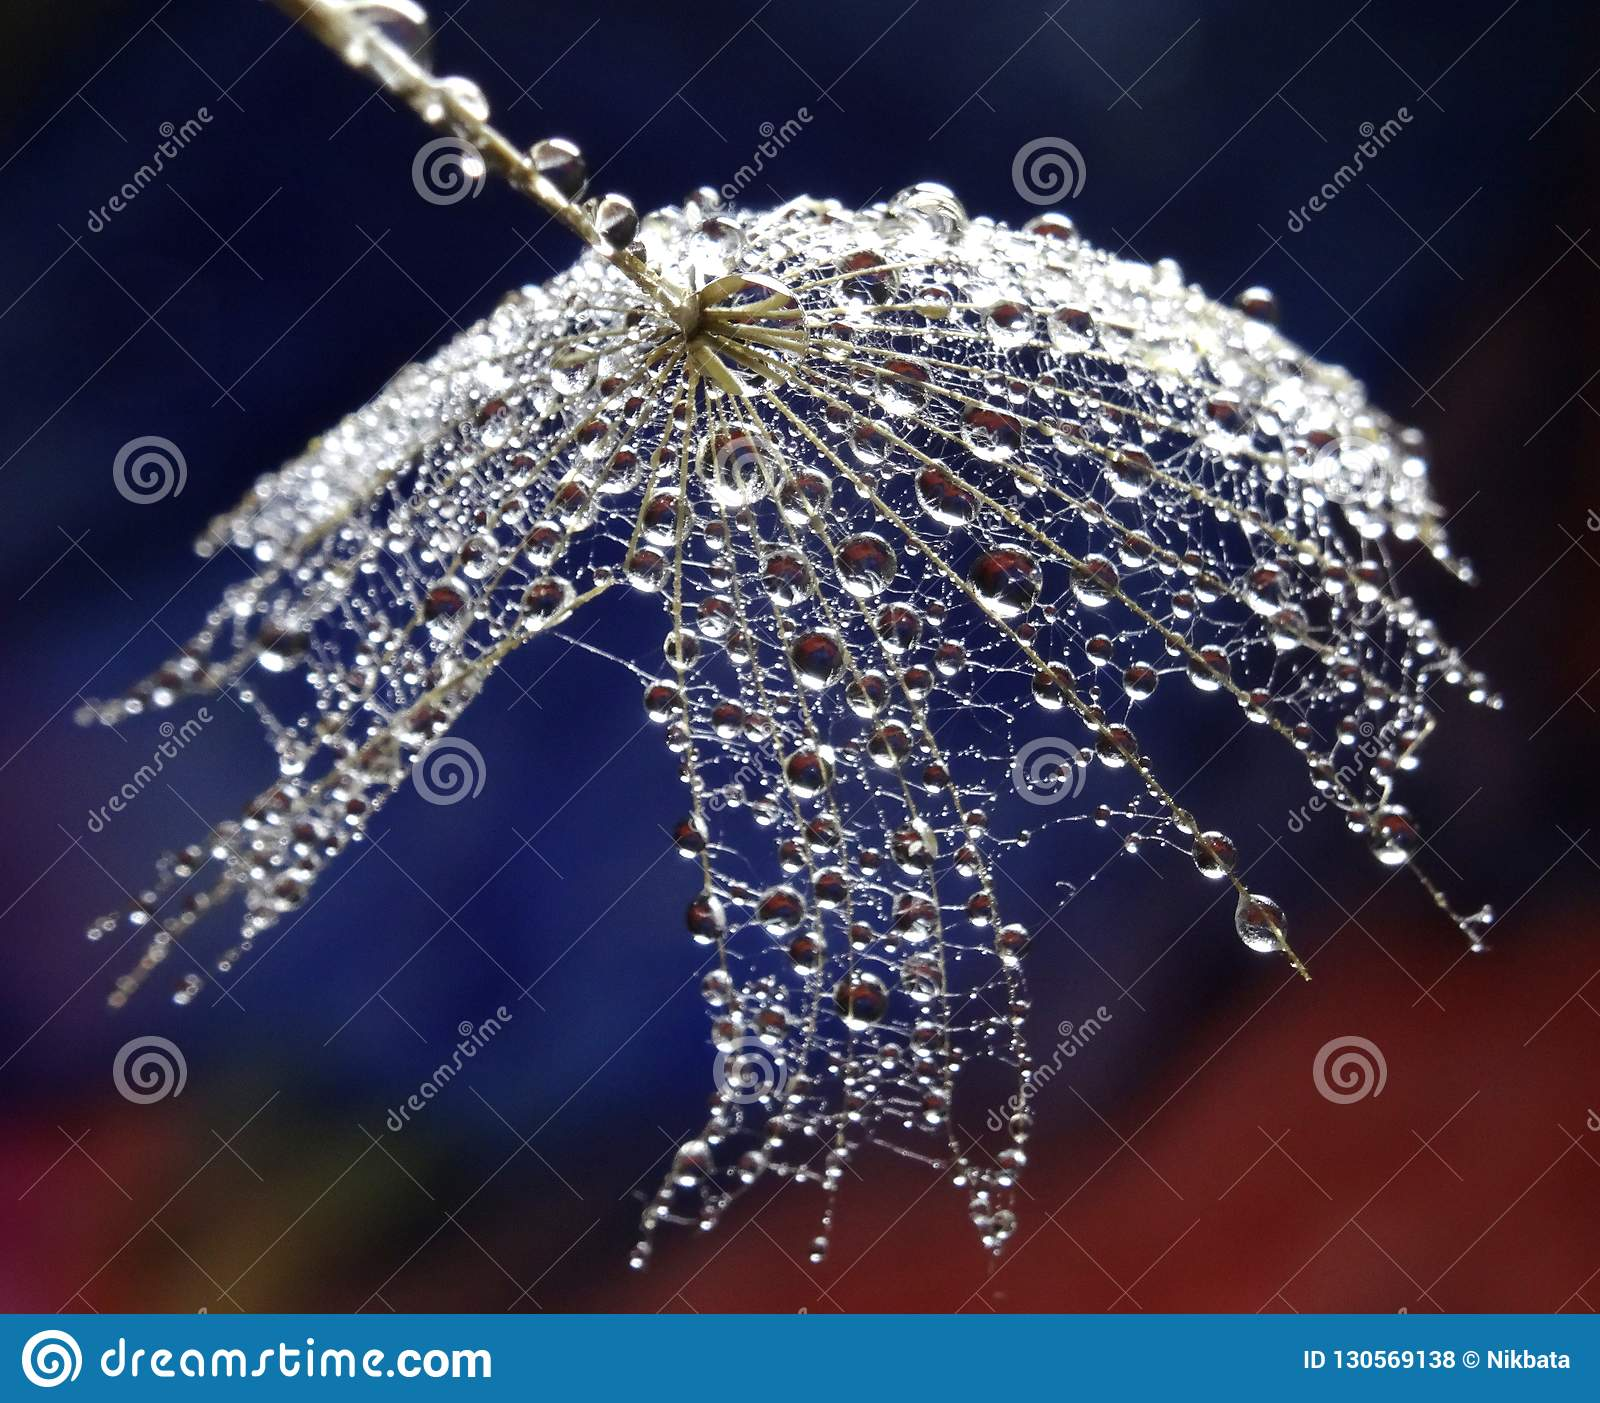 Seed of dandelion with water drops - isolated on a multicolor background